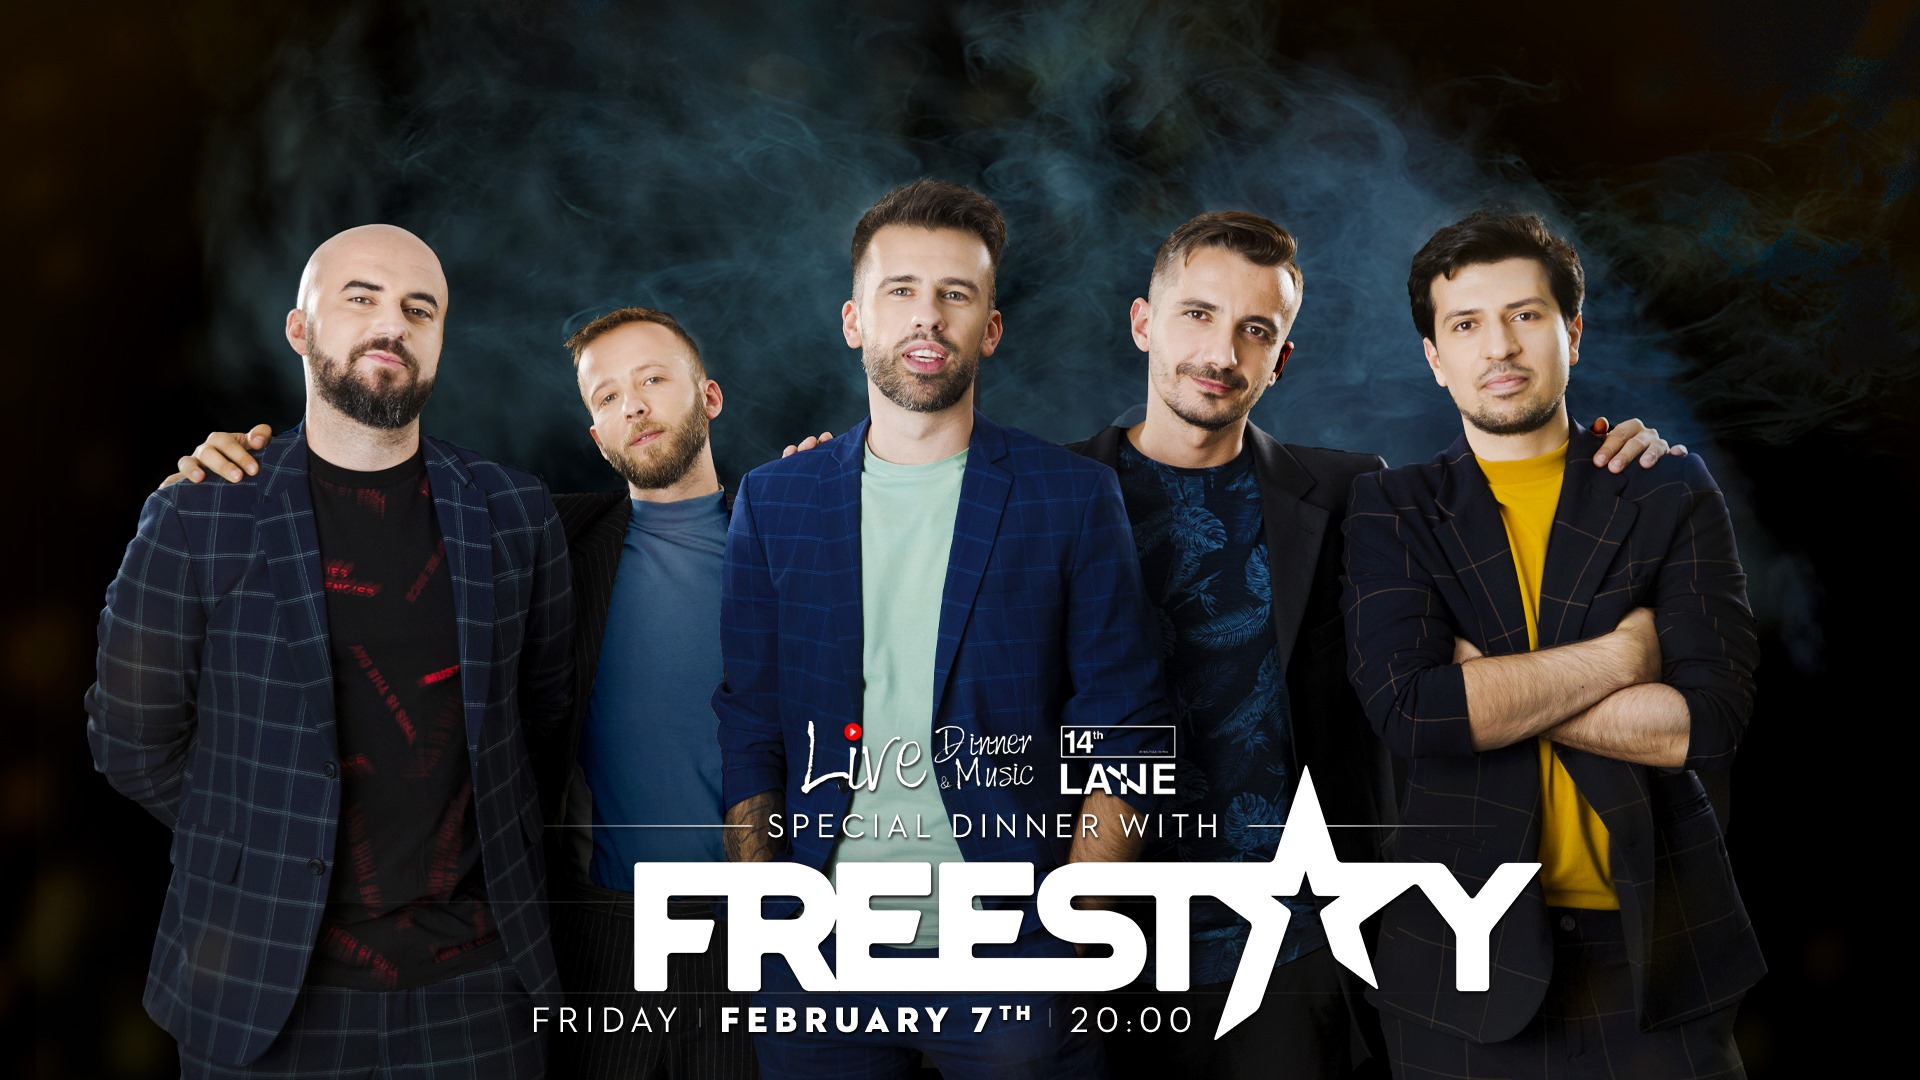 Freestay la 14thLane weekend 7-9 februarie